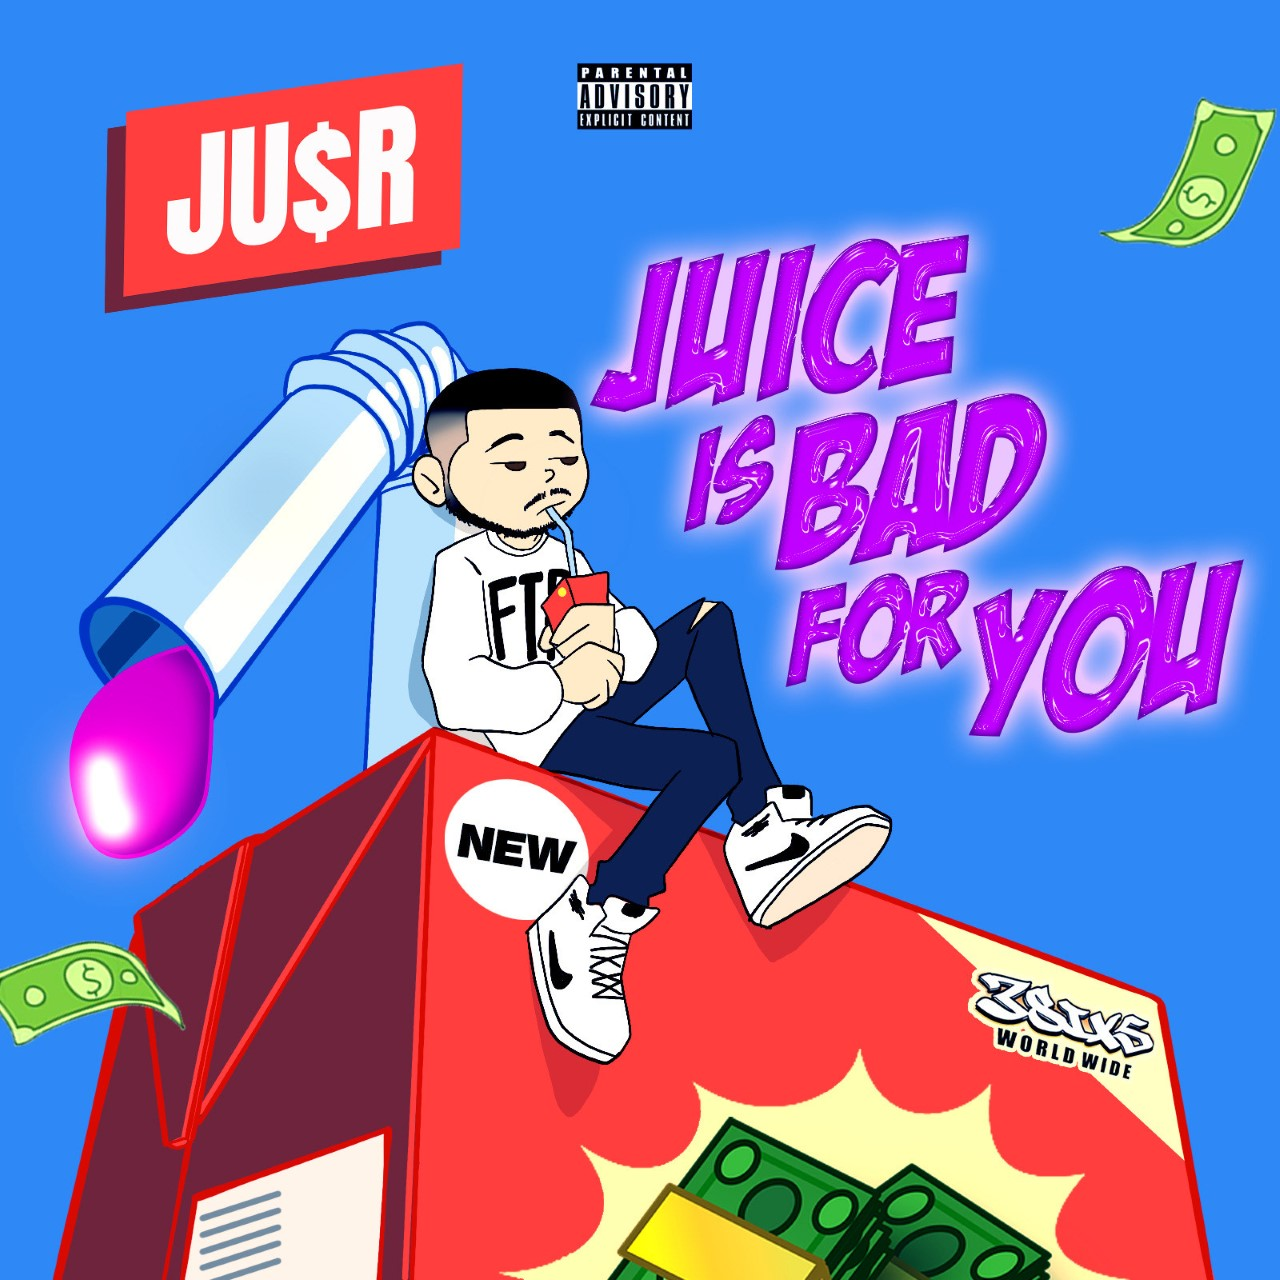 """Ju$r Links Up With Kiro For """"Humble"""" Video"""